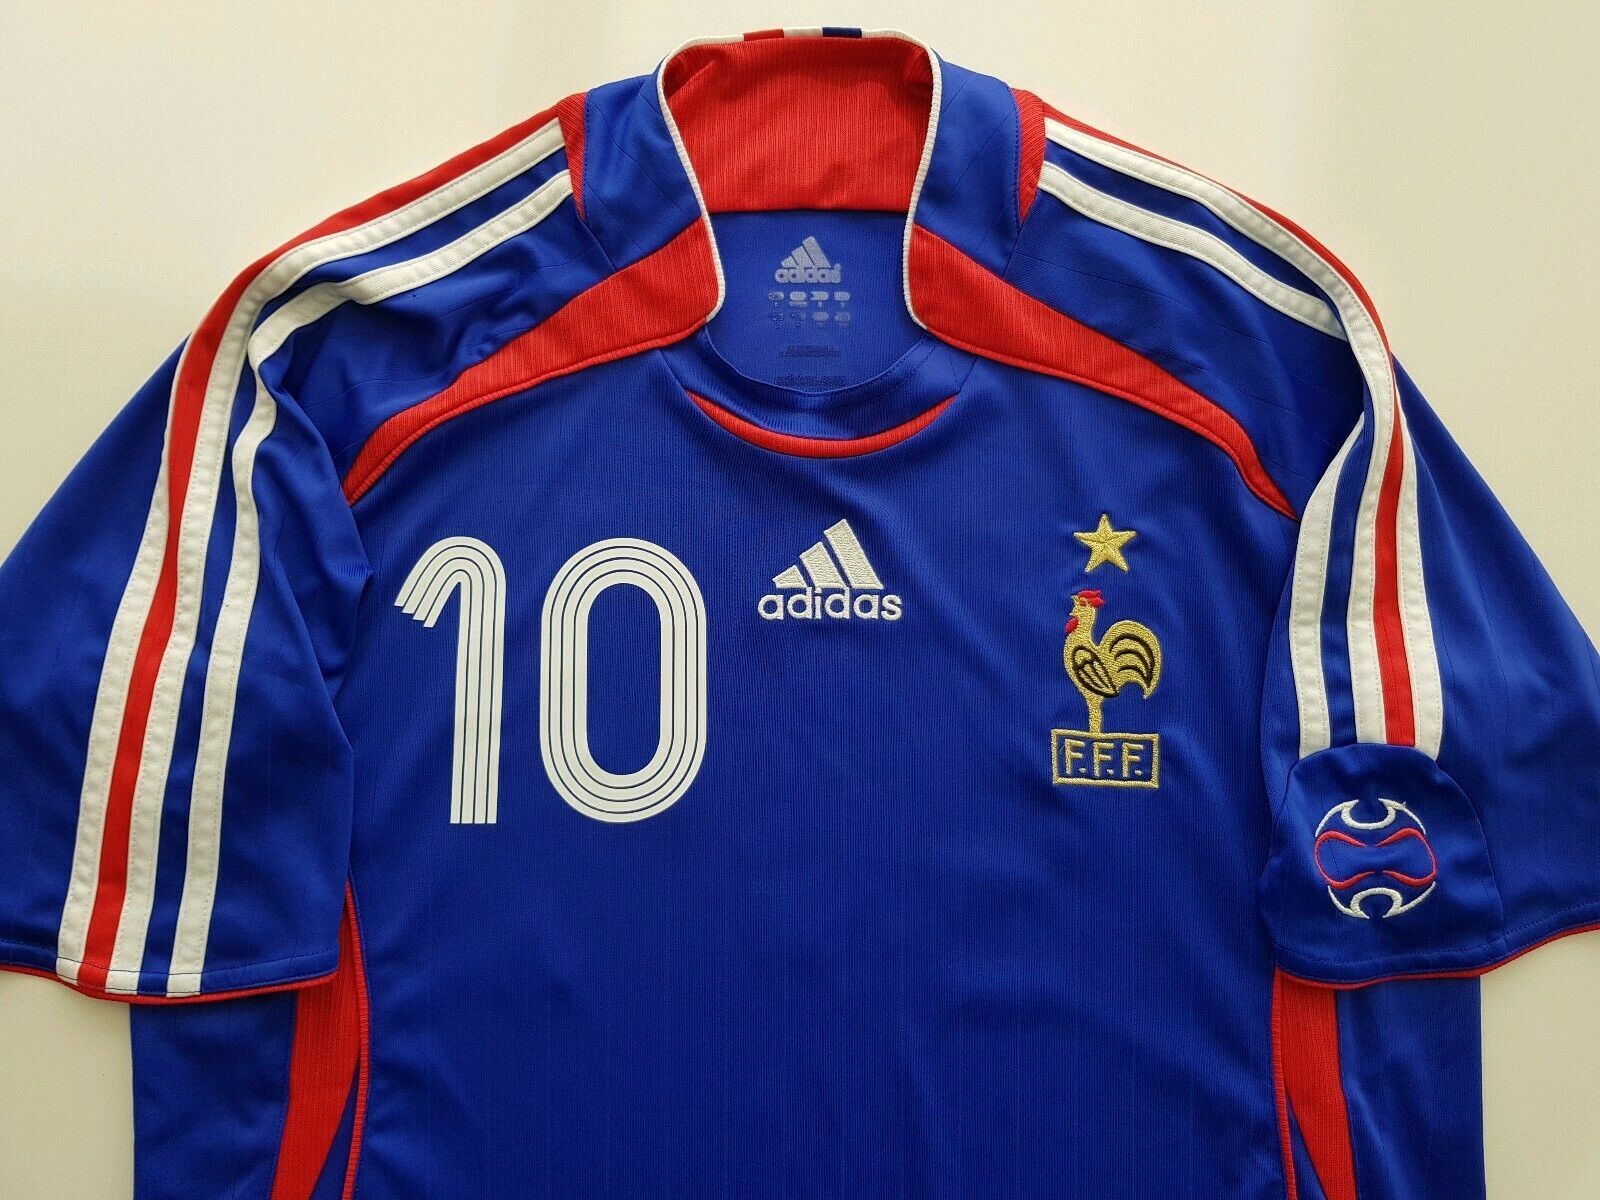 Camiseta Francia 2006 France shirt Zidane maillot jersey S Real Madrid